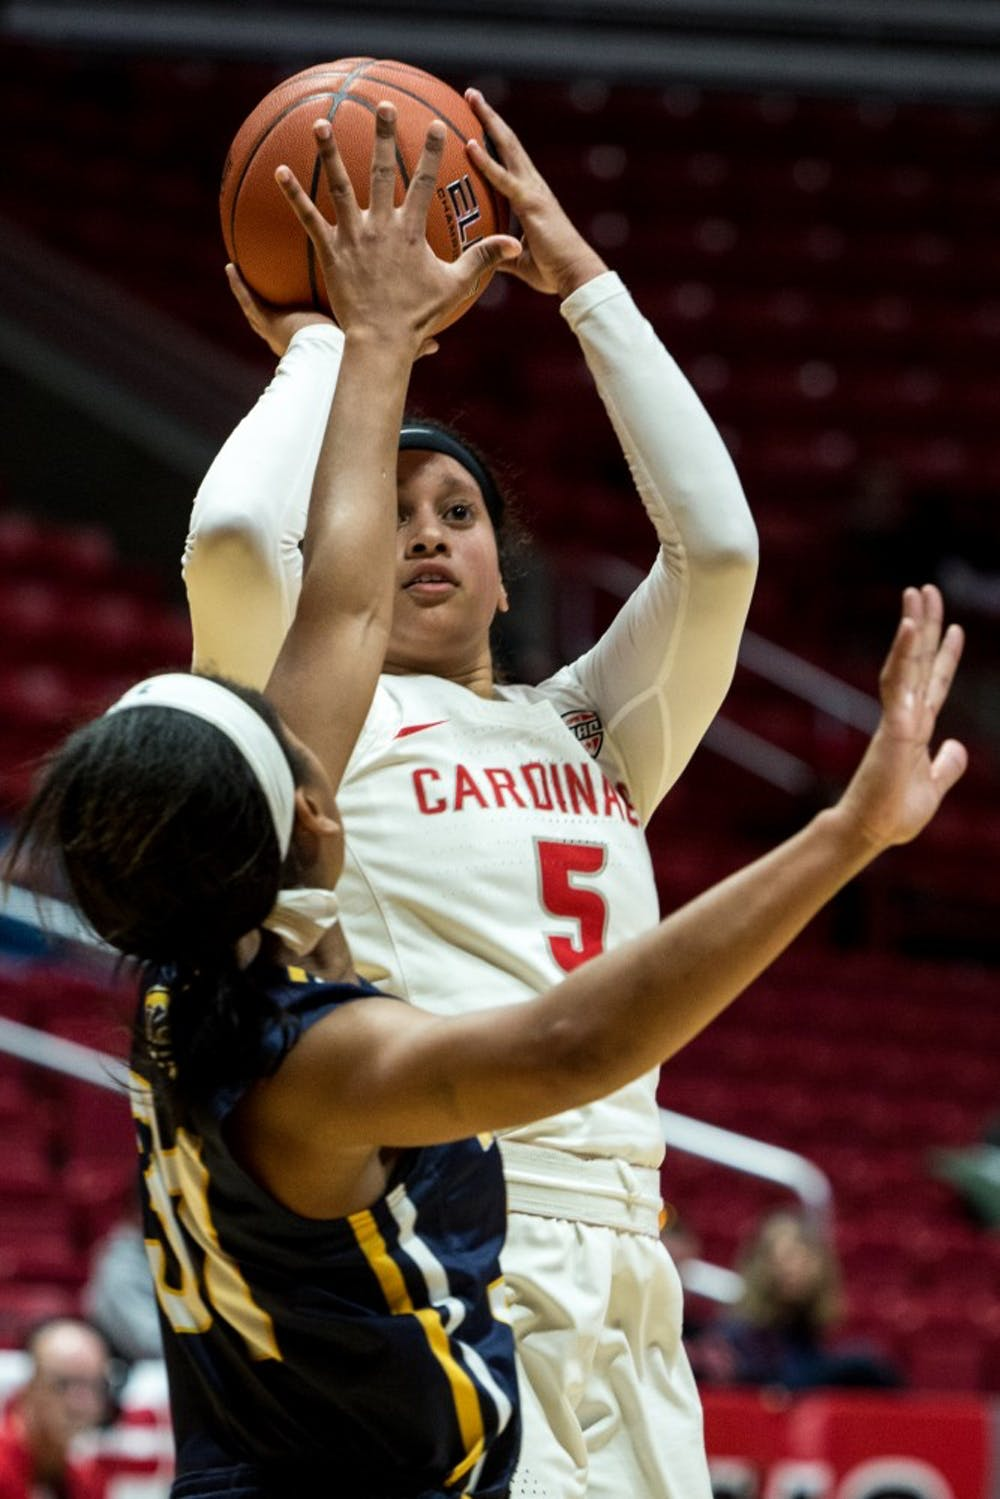 Ball State guard Maliah Howard-Bass sinks a pull up jump shot over Kent State guard Megan Carter in John E. Worthen Arena to keep their lead in the first half of the game Jan. 23, 2019. The women's basketball game was close up until the last few minutes when Ball State took a lead to win 48-44. Eric Pritchett,DN